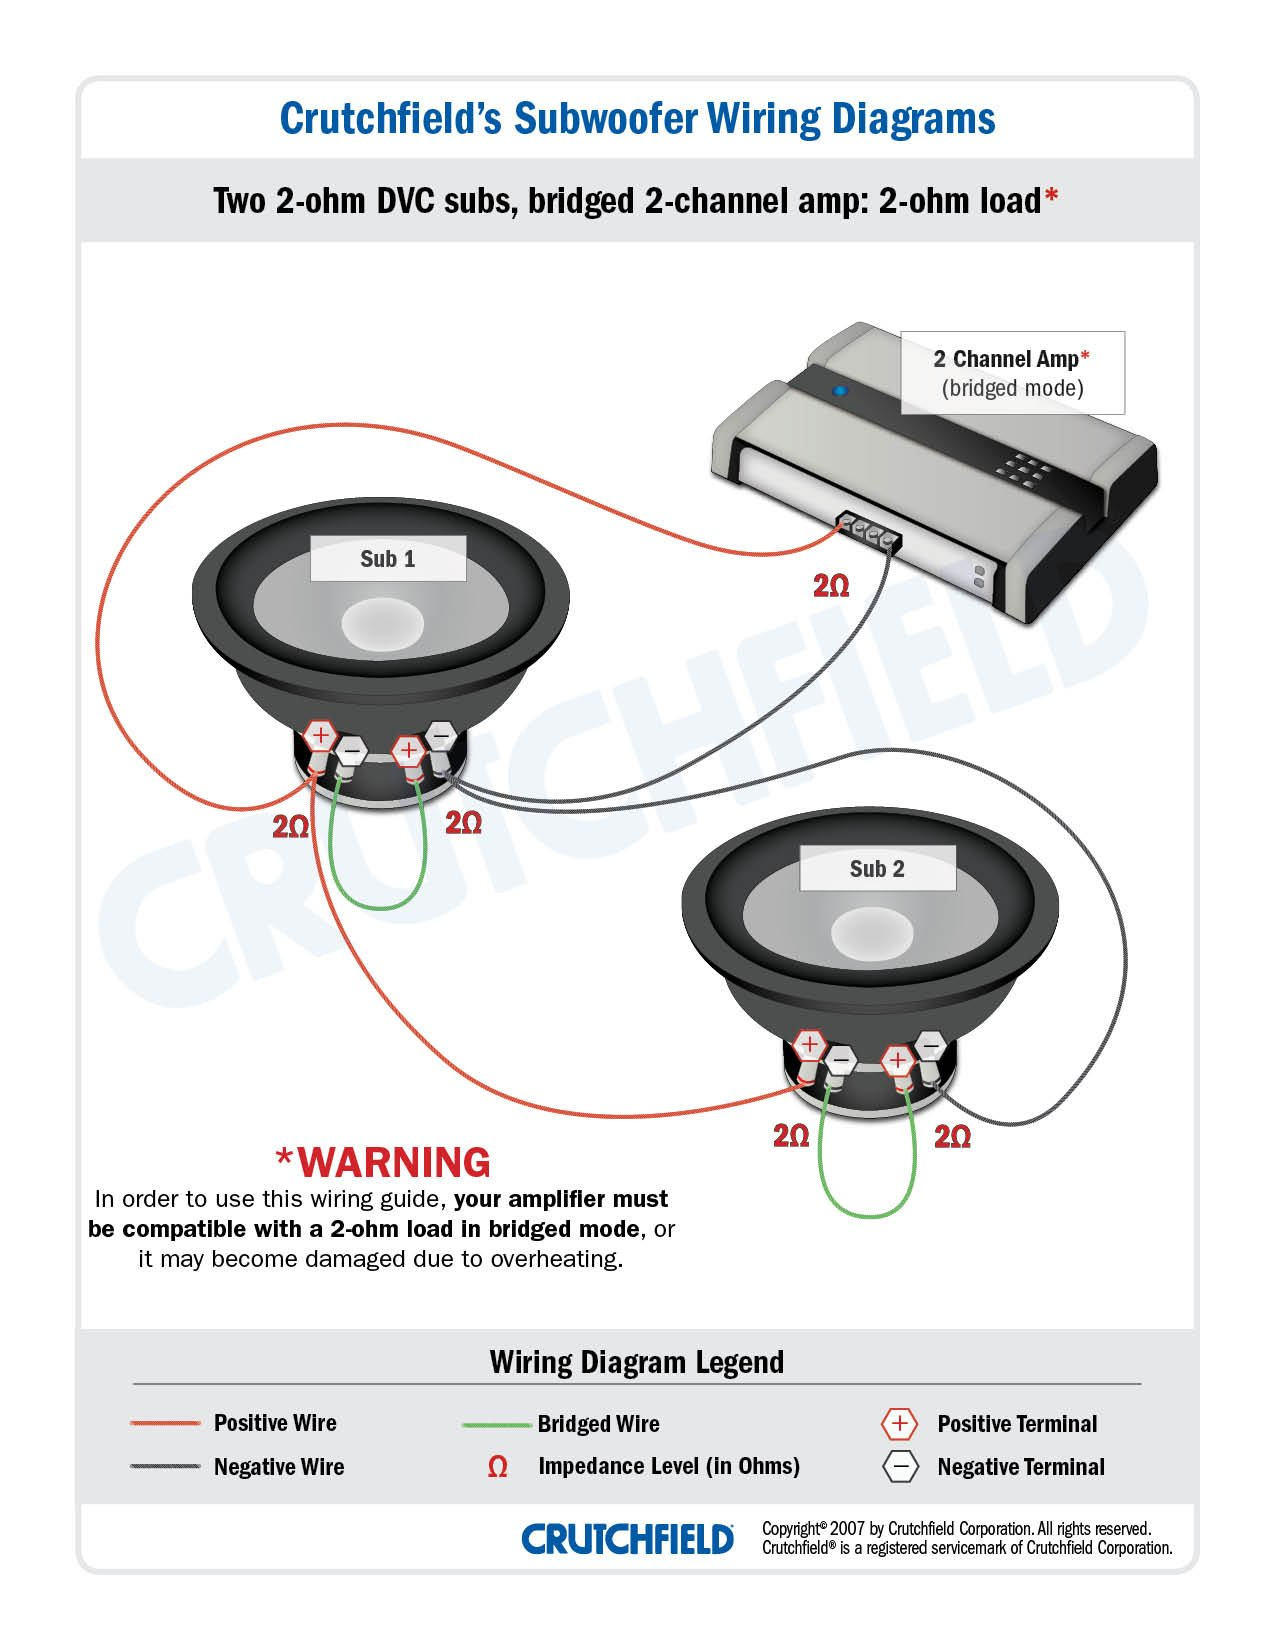 2 DVC 2 ohm 2 ch low imp subwoofer wiring diagrams quad voice coil wiring diagram at eliteediting.co